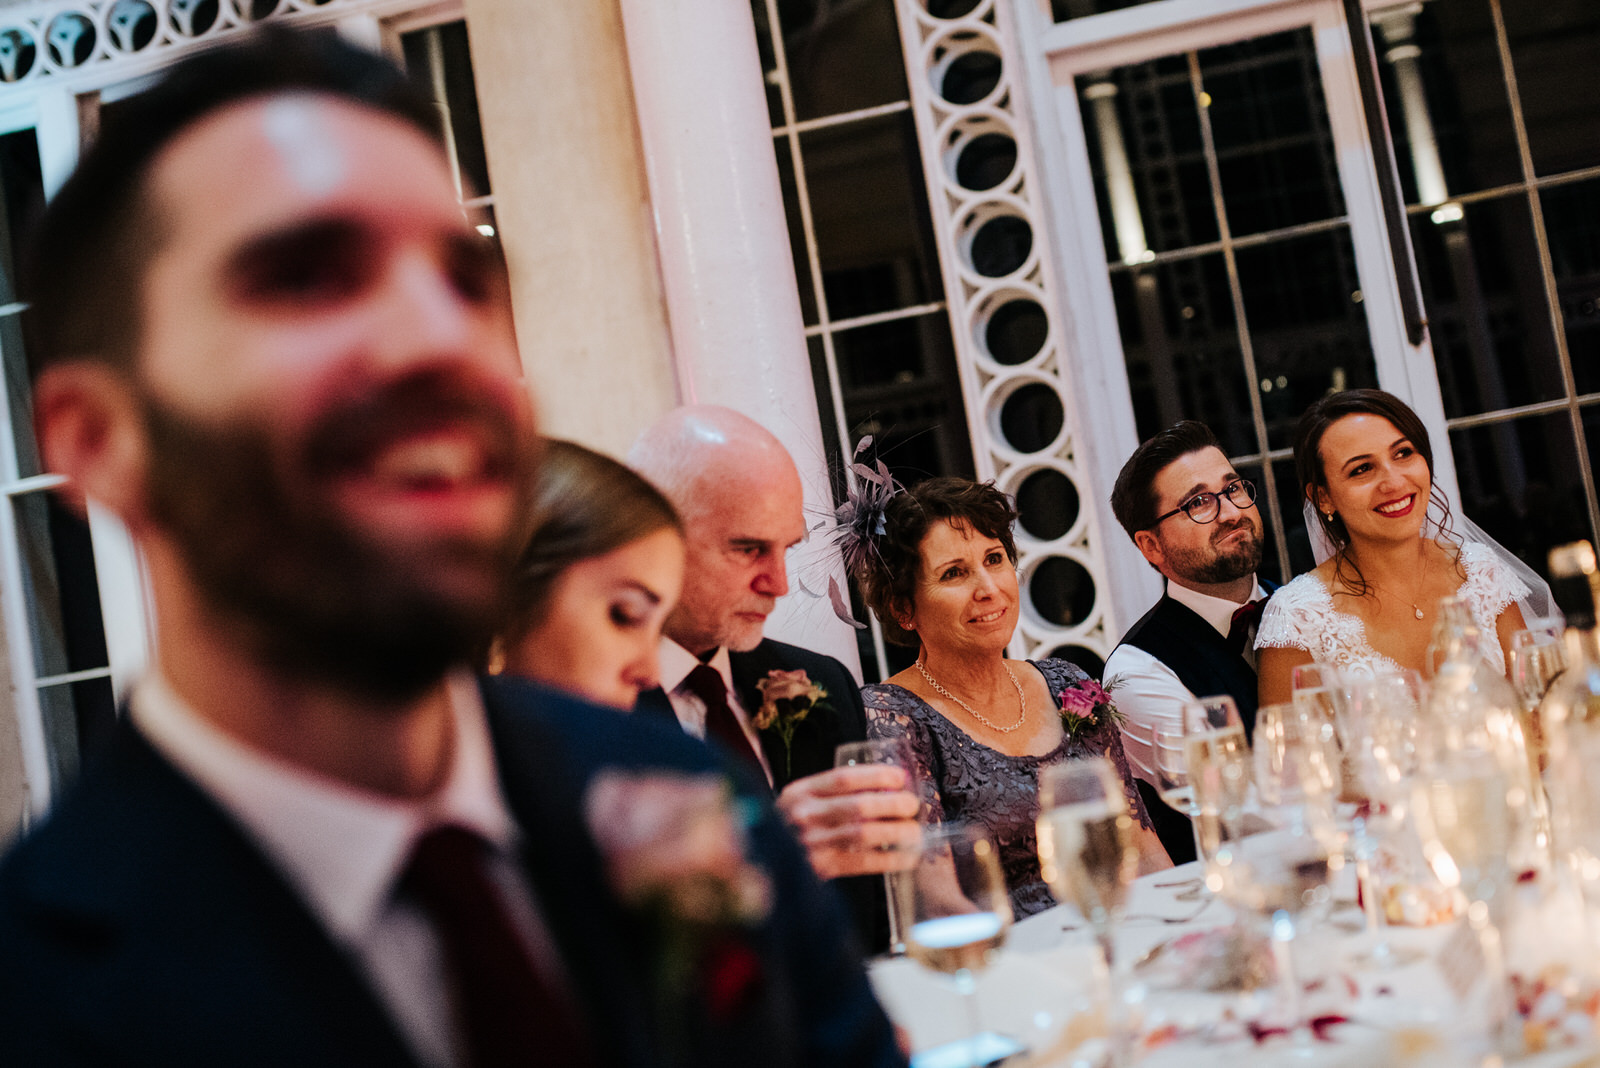 Photograph of bride, groom and family listening to wedding speeches